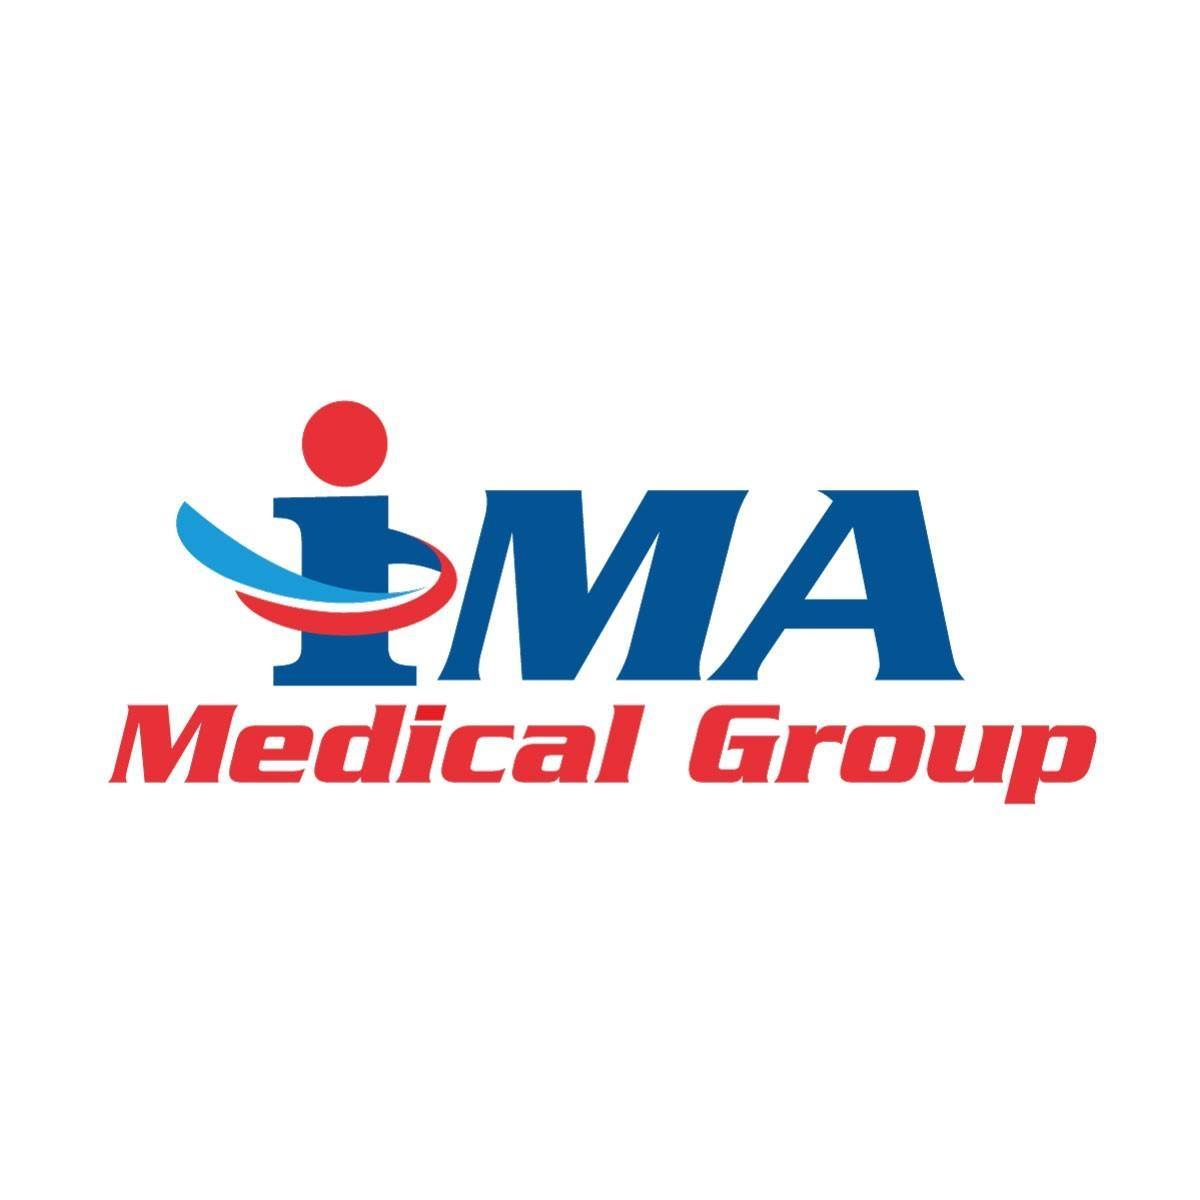 Ima Medical Group                        Logo